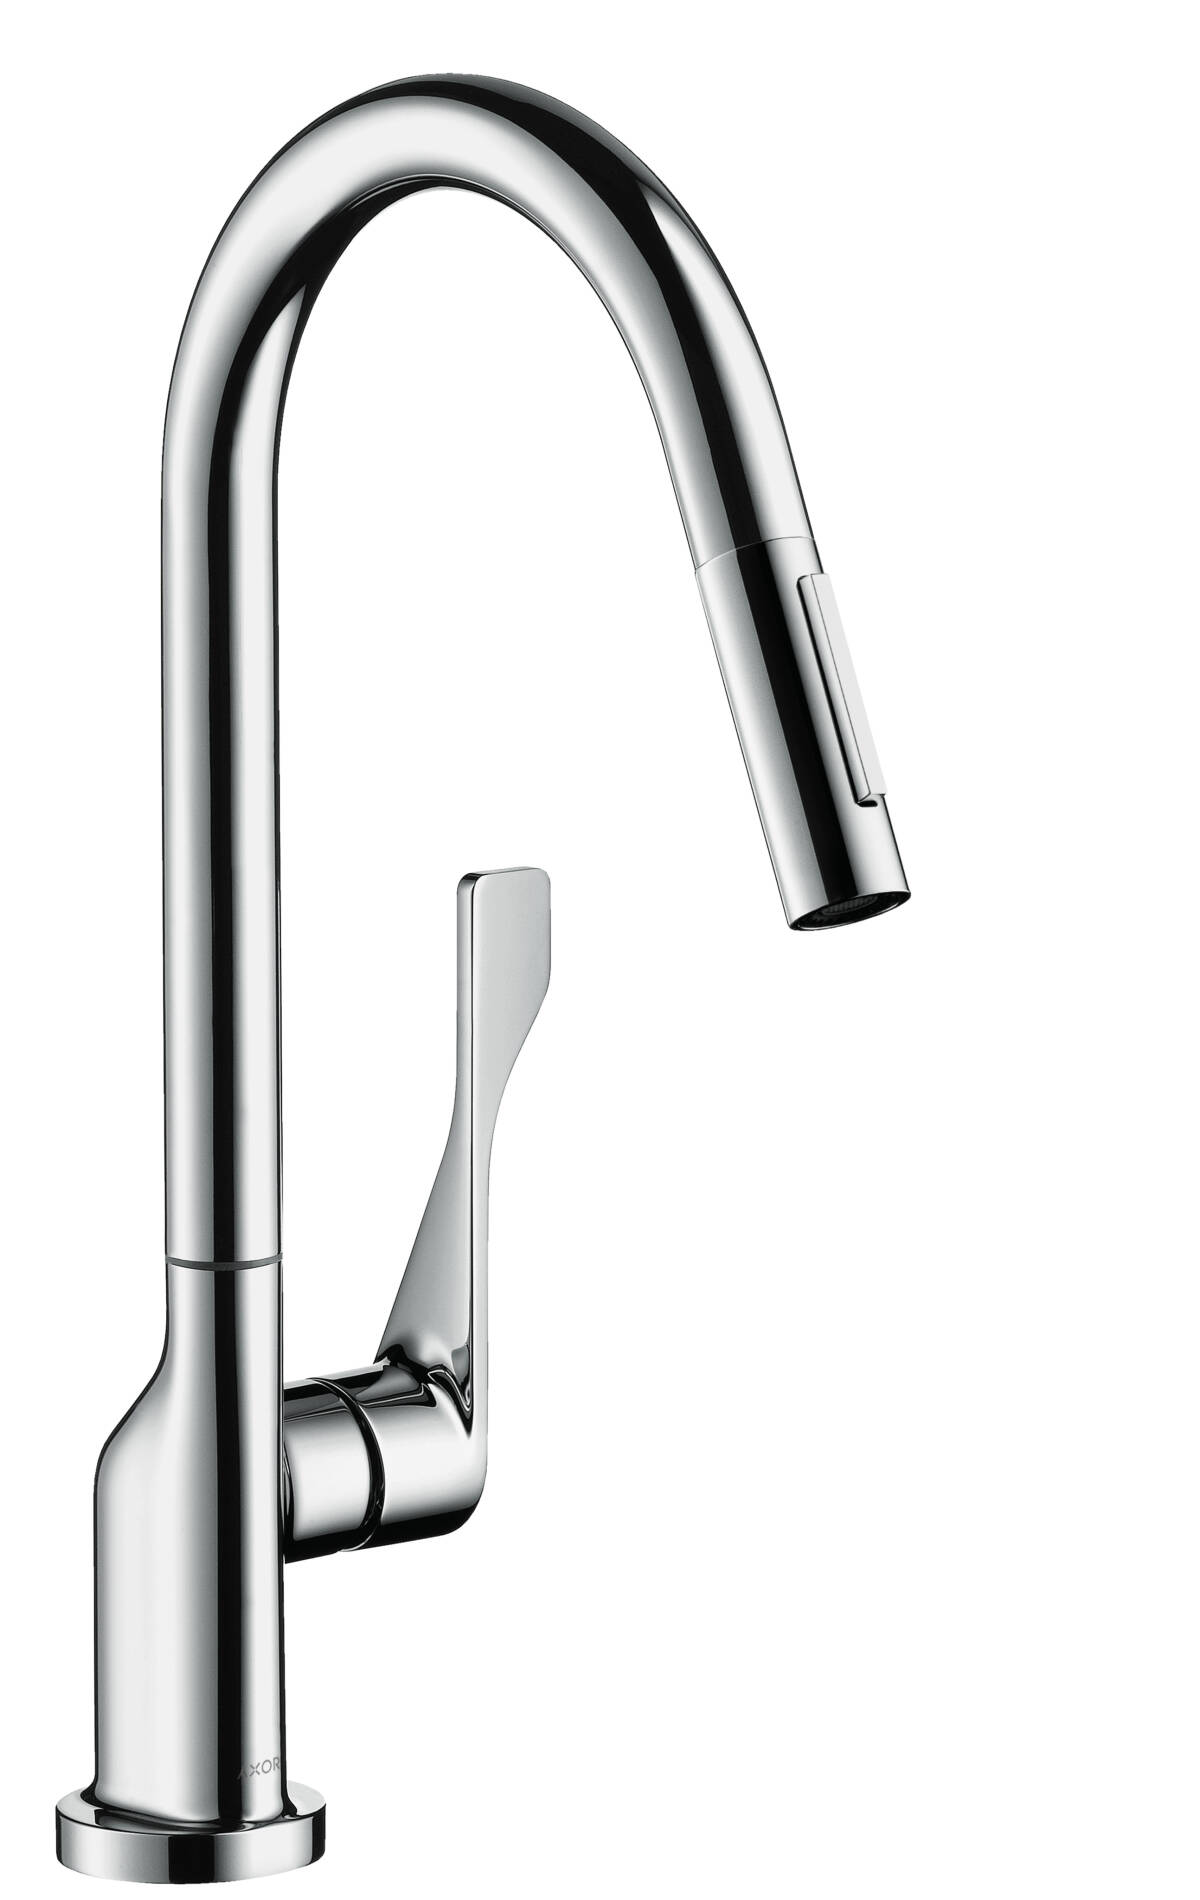 Single lever kitchen mixer 250 with pull-out spray, Brushed Brass, 39835950